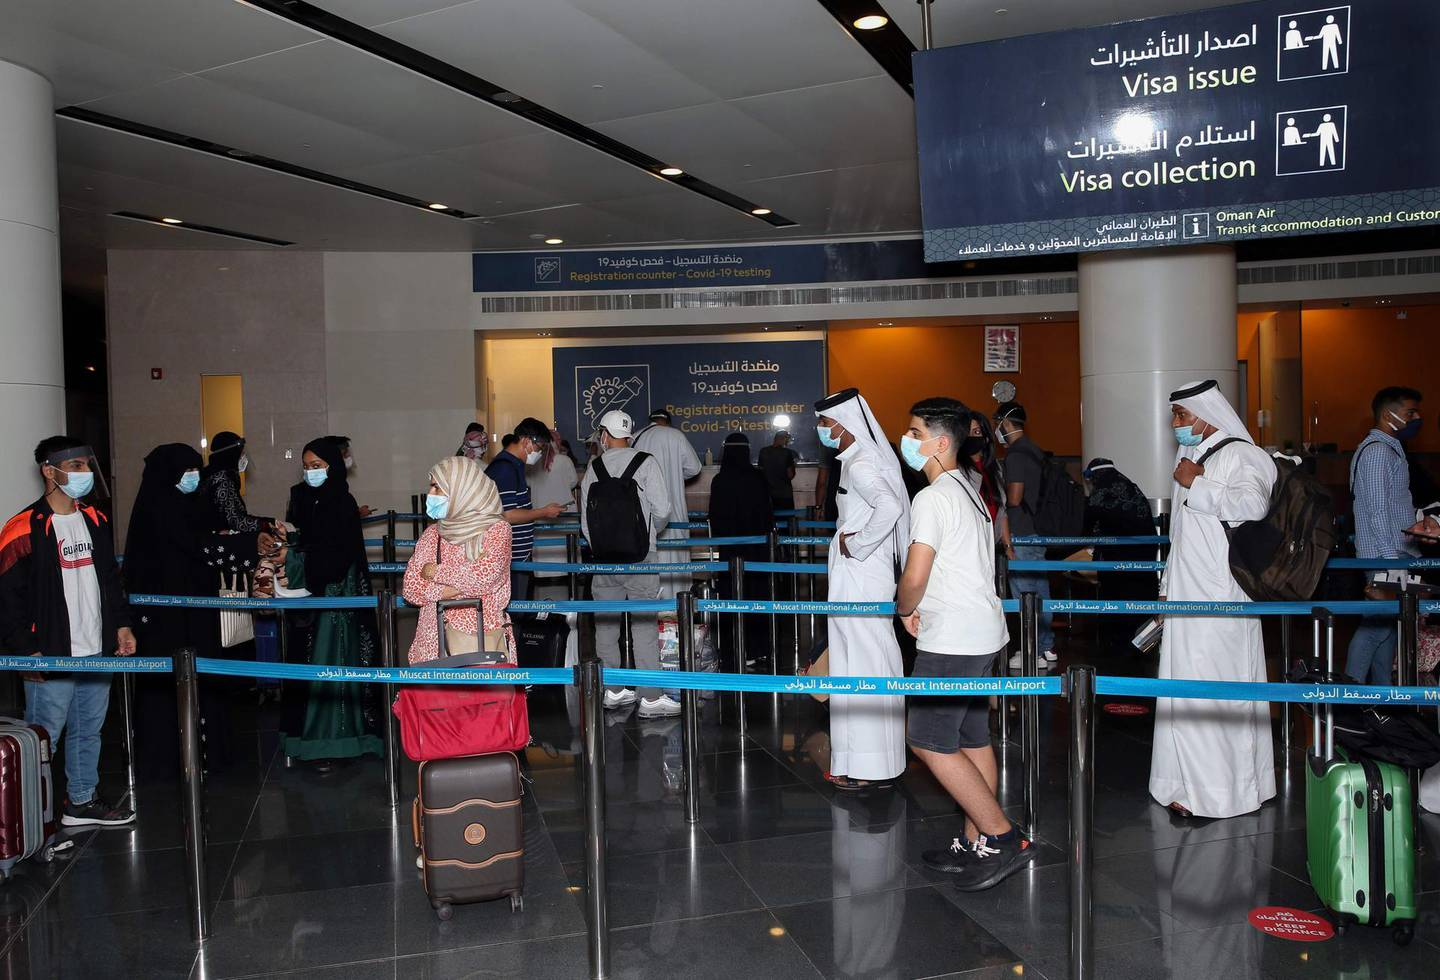 Passengers, wearing protective face mask due to the Covid-19 pandemic, stand in a queue at the Muscat international airport in the Omani capital on October 1, 2020.  / AFP / MOHAMMED MAHJOUB